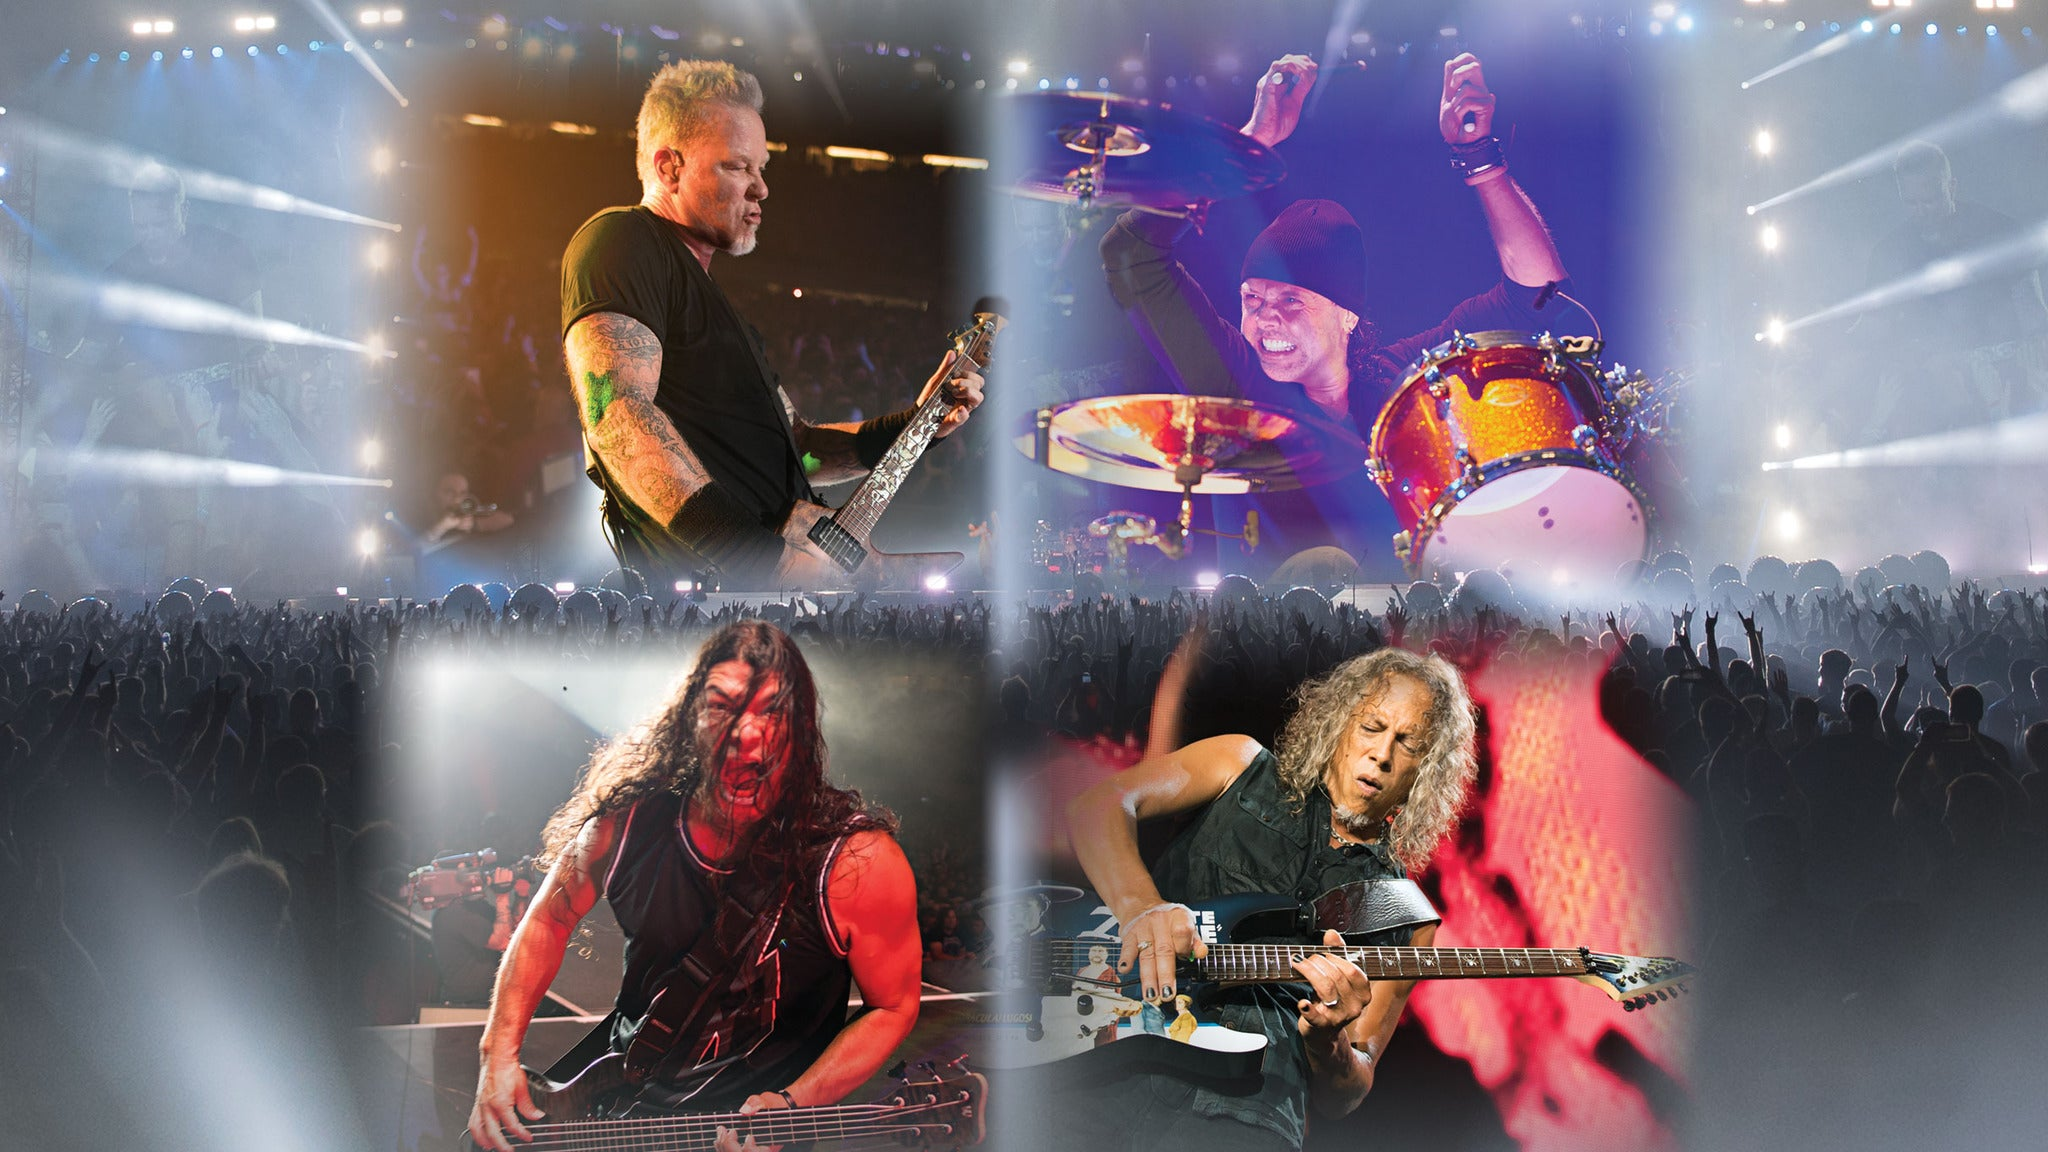 Metallica - WorldWired Tour 2017 at Soldier Field